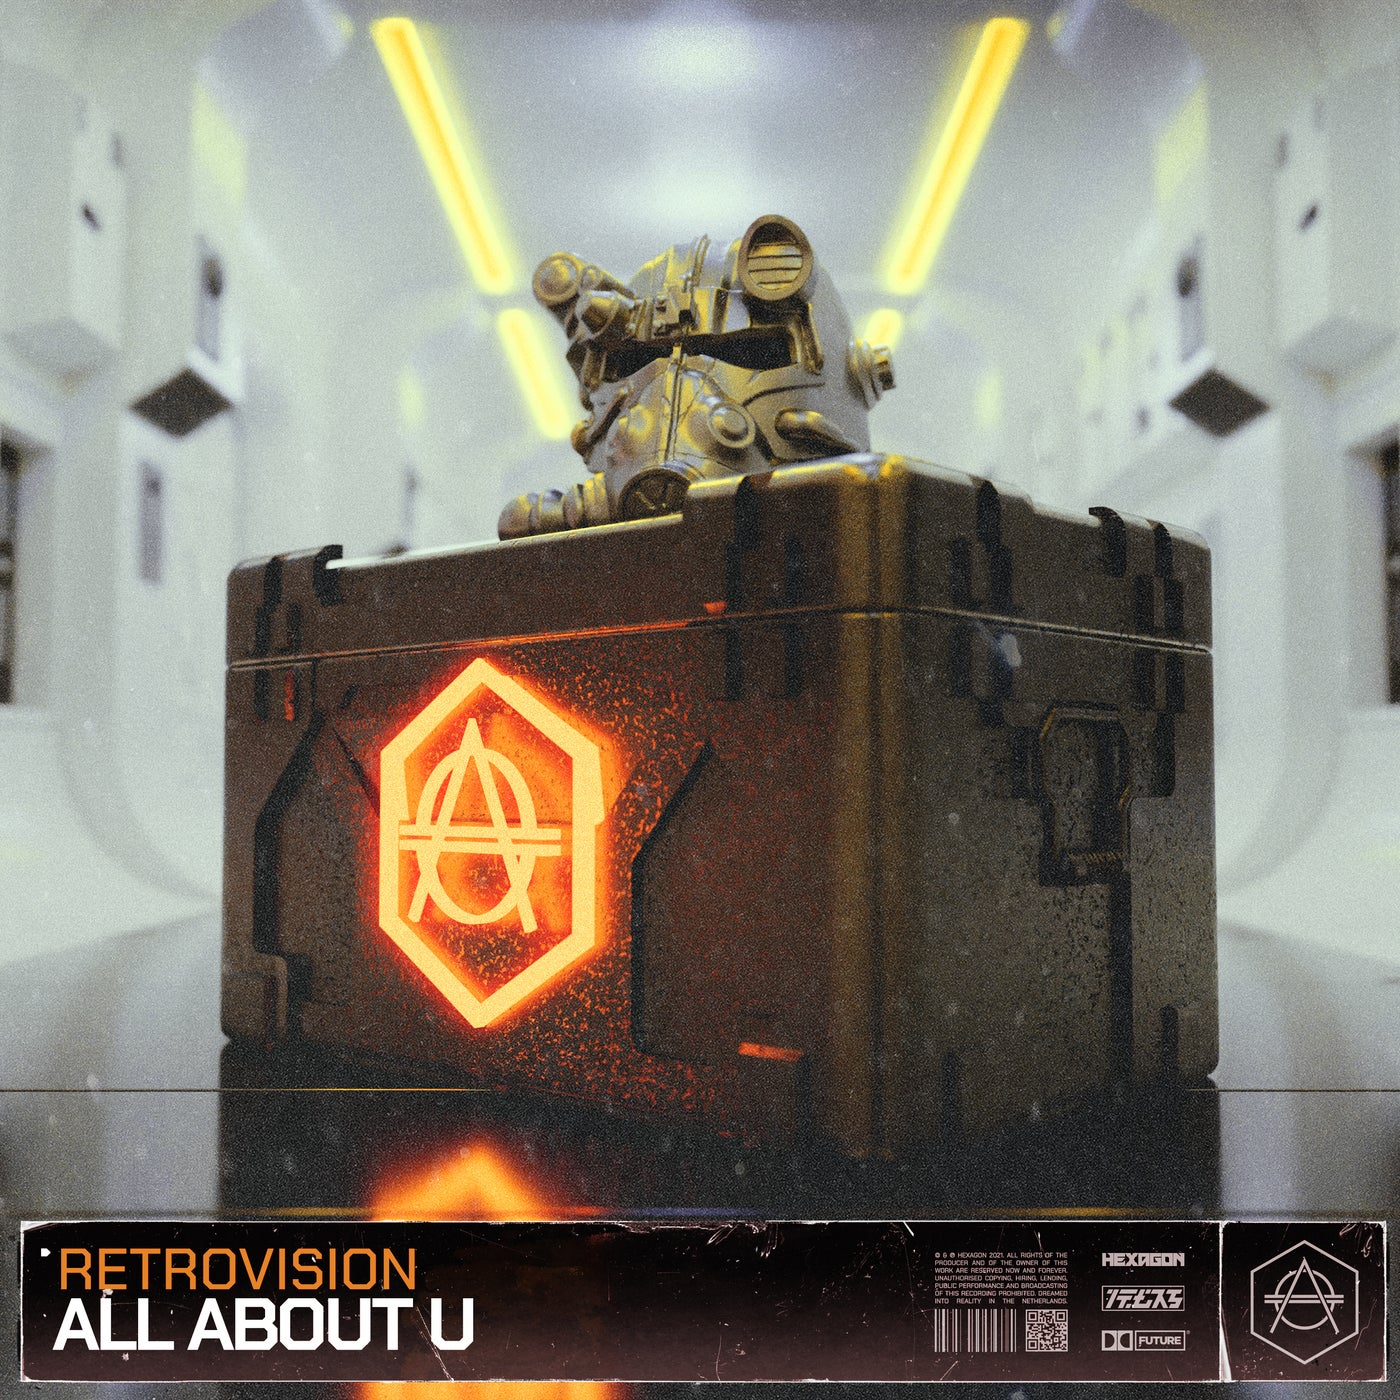 All About U (Extended Mix)